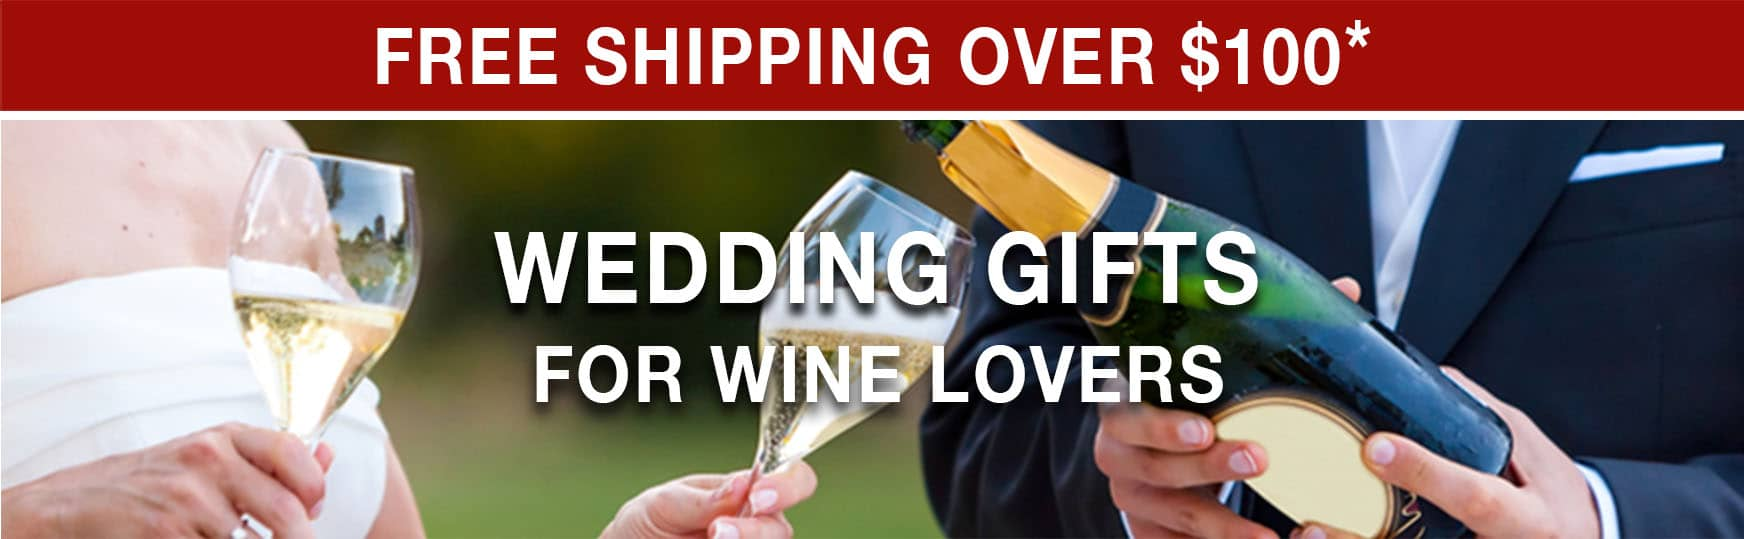 Wedding Gifts for Wine Lovers - Free Shipping Over $100* Use Code FS21W